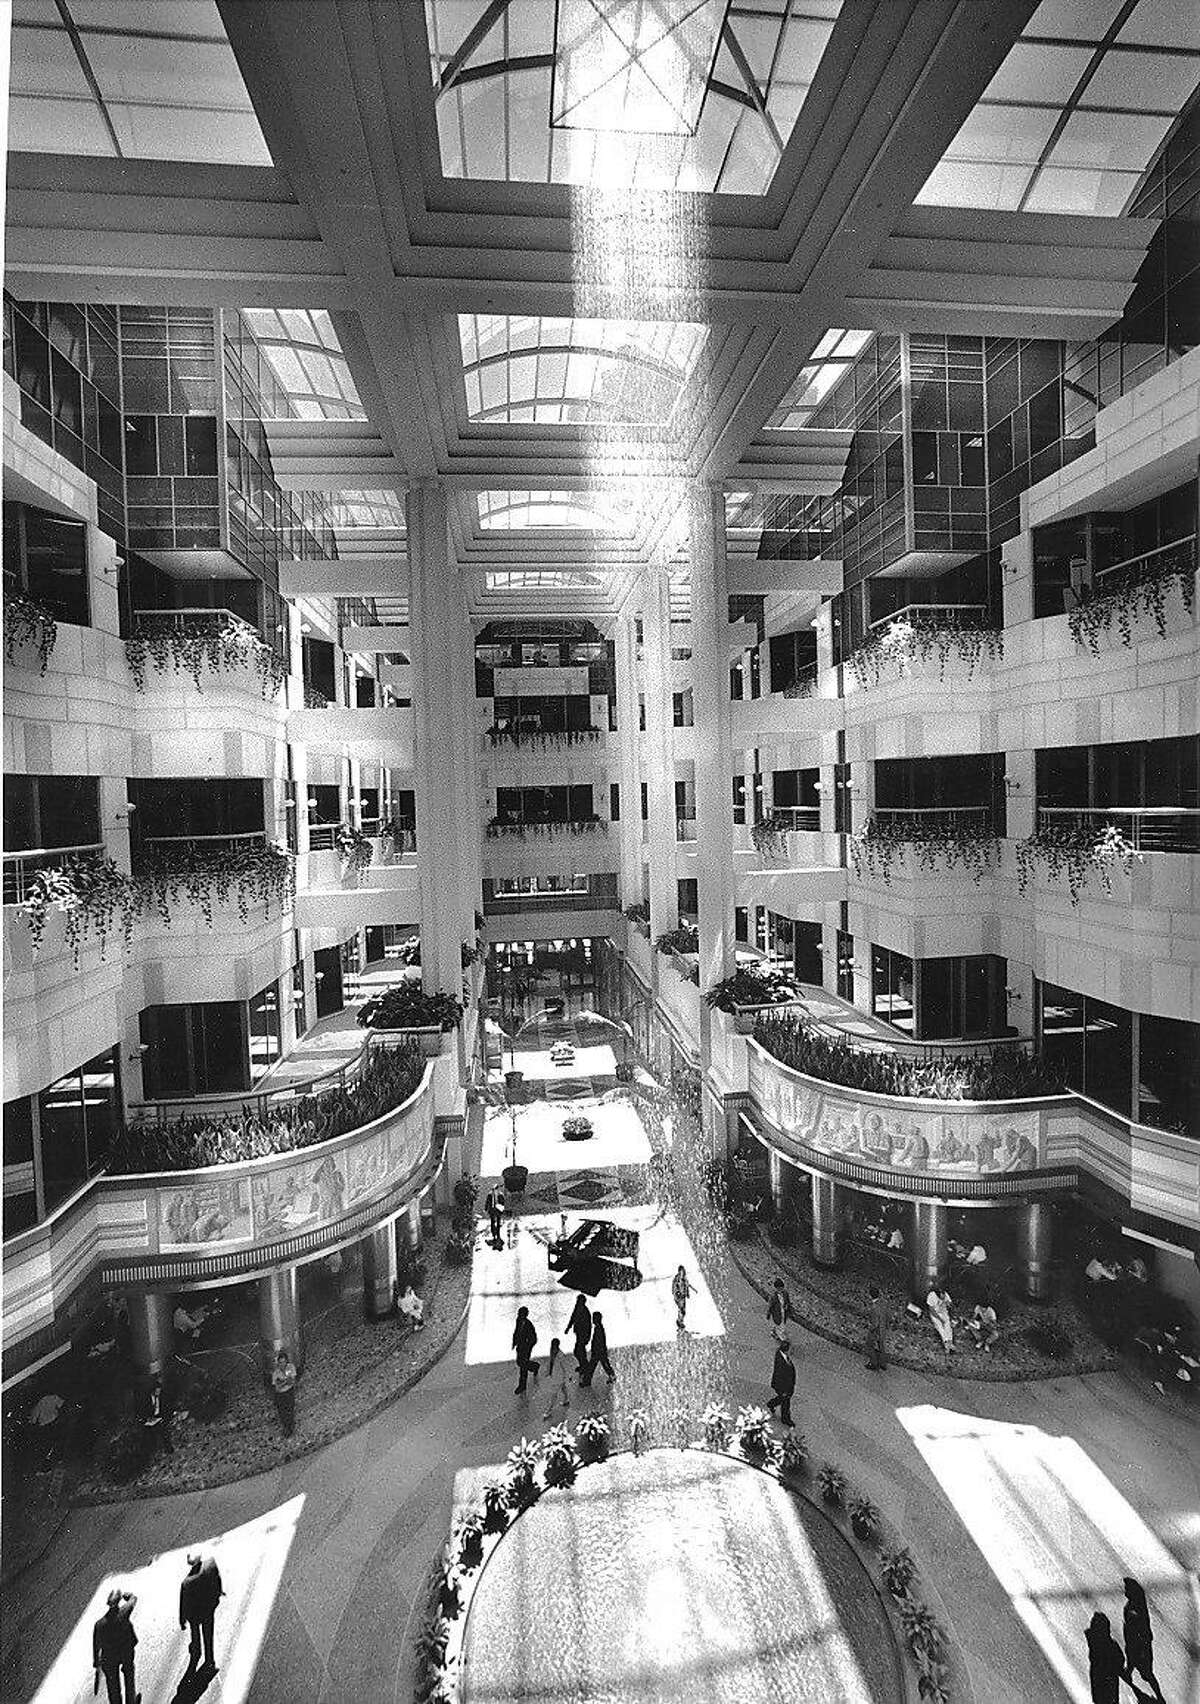 A fountain sprinkles water at the Rincon Center atrium in May 1989.